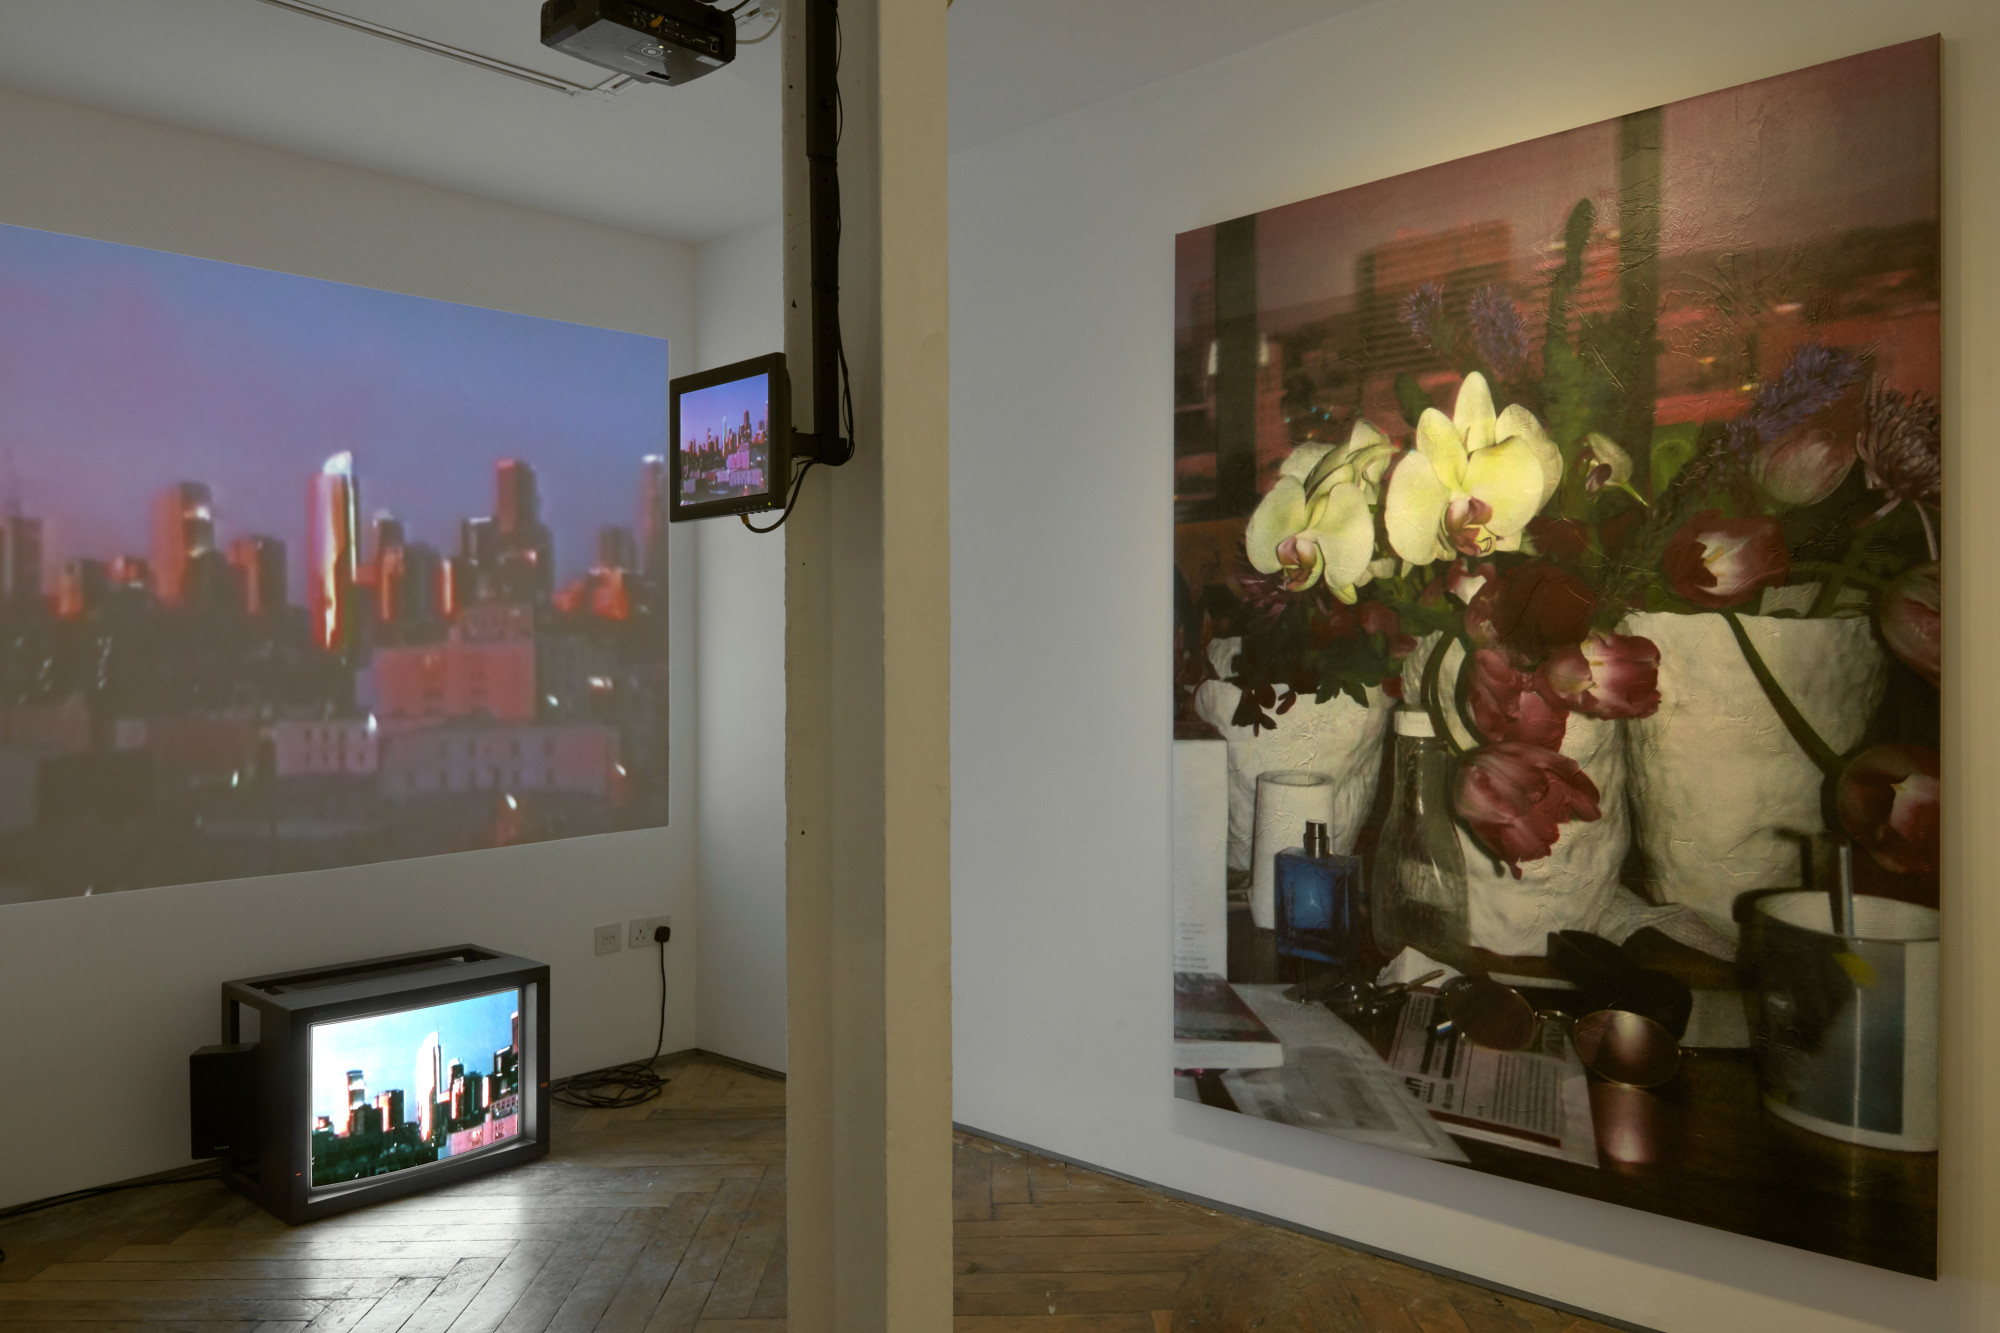 <p>Installation view, Château Shatto, Parker Ito, The Shop, 62 Kingly Street, 2019</p><p>Photo by Robert Glowacki</p>